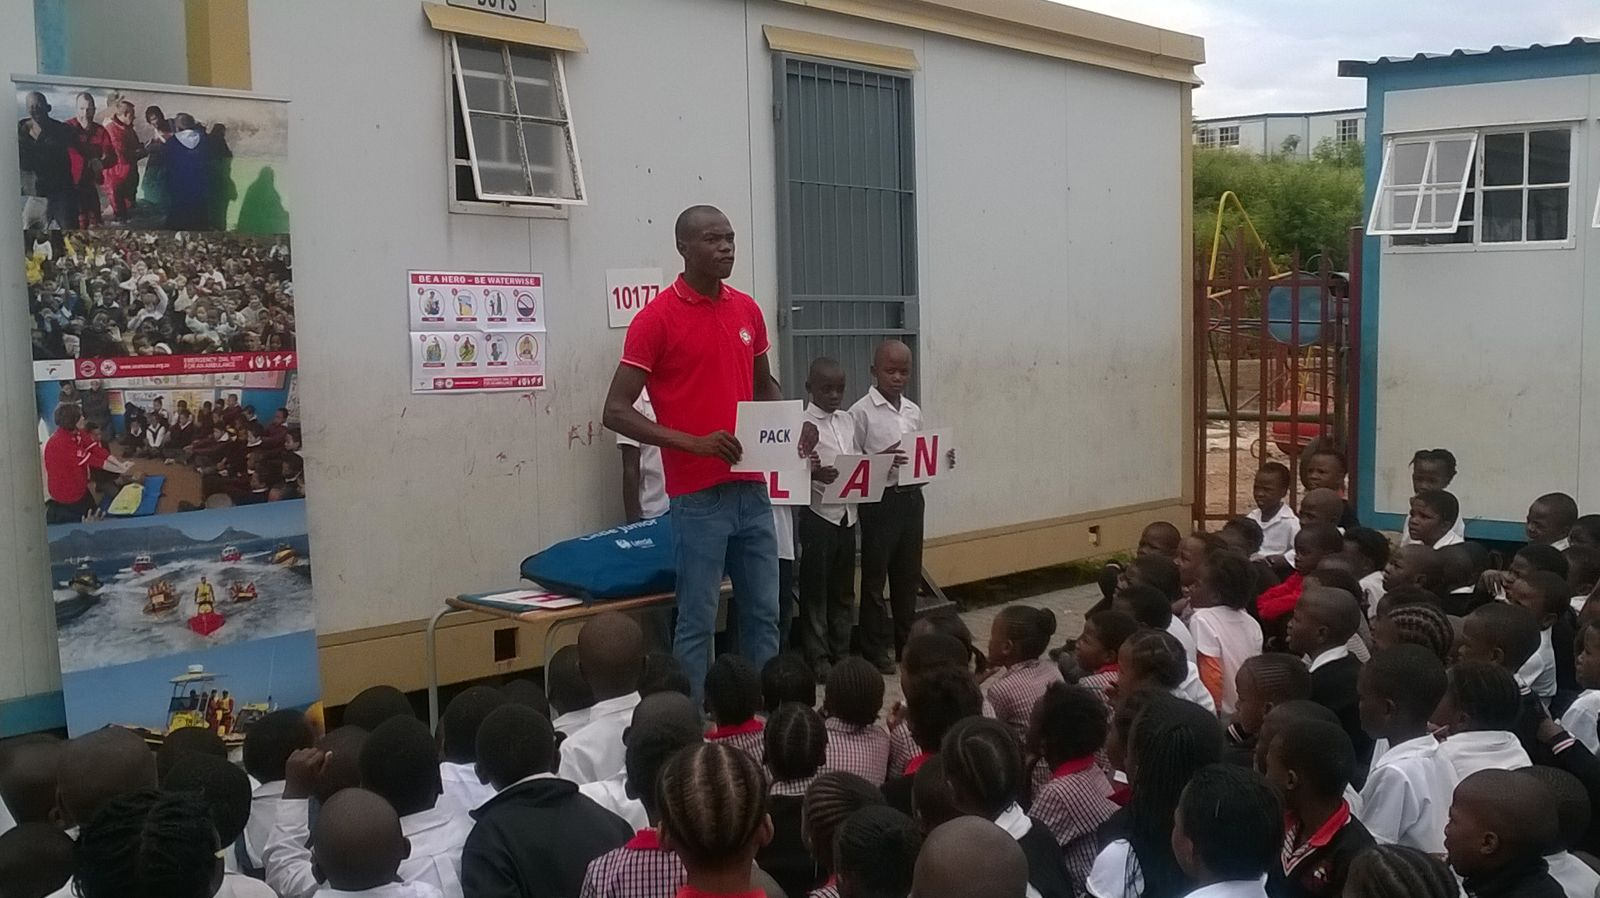 Percy teaches the children how to make a WaterWise PLAN